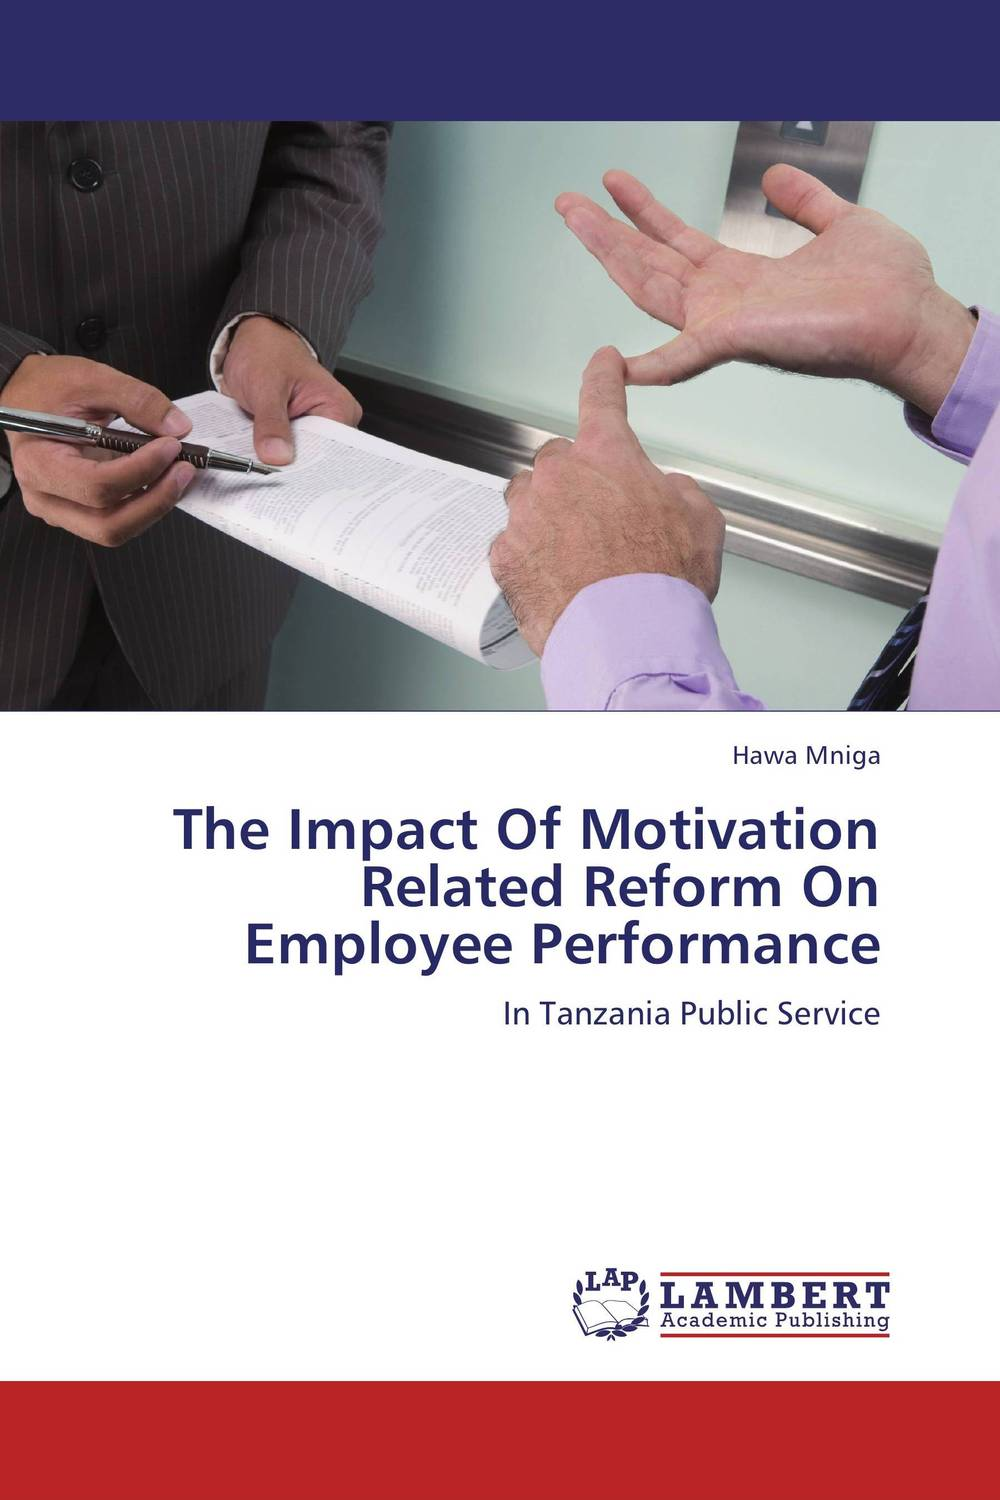 The Impact Of Motivation Related Reform On Employee Performance the impact of motivation related reform on employee performance